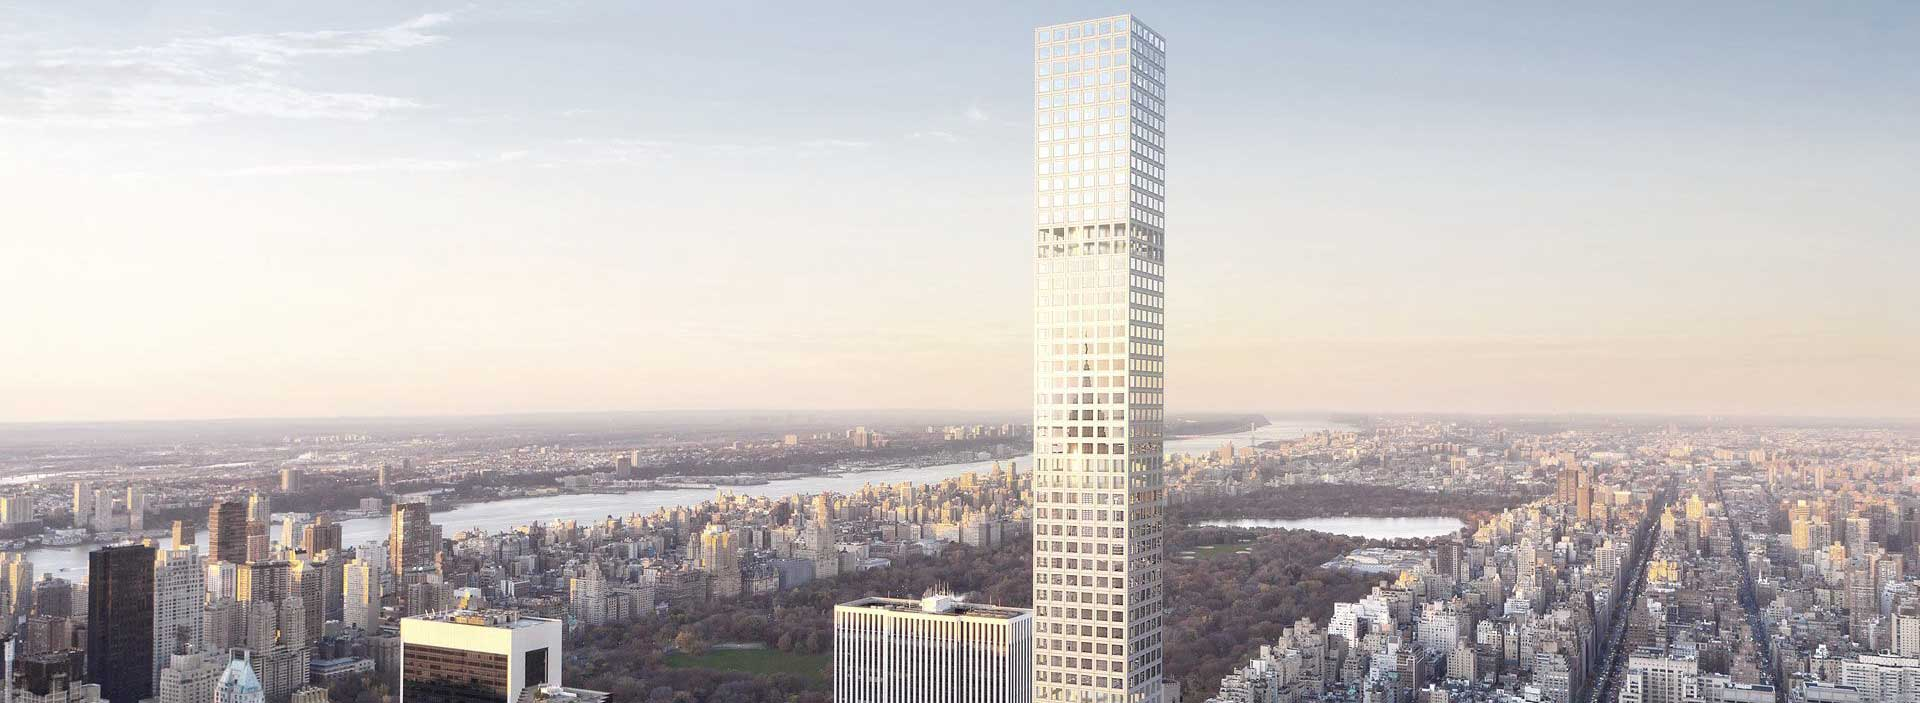 Engineering 432 park avenue wsp publicscrutiny Images